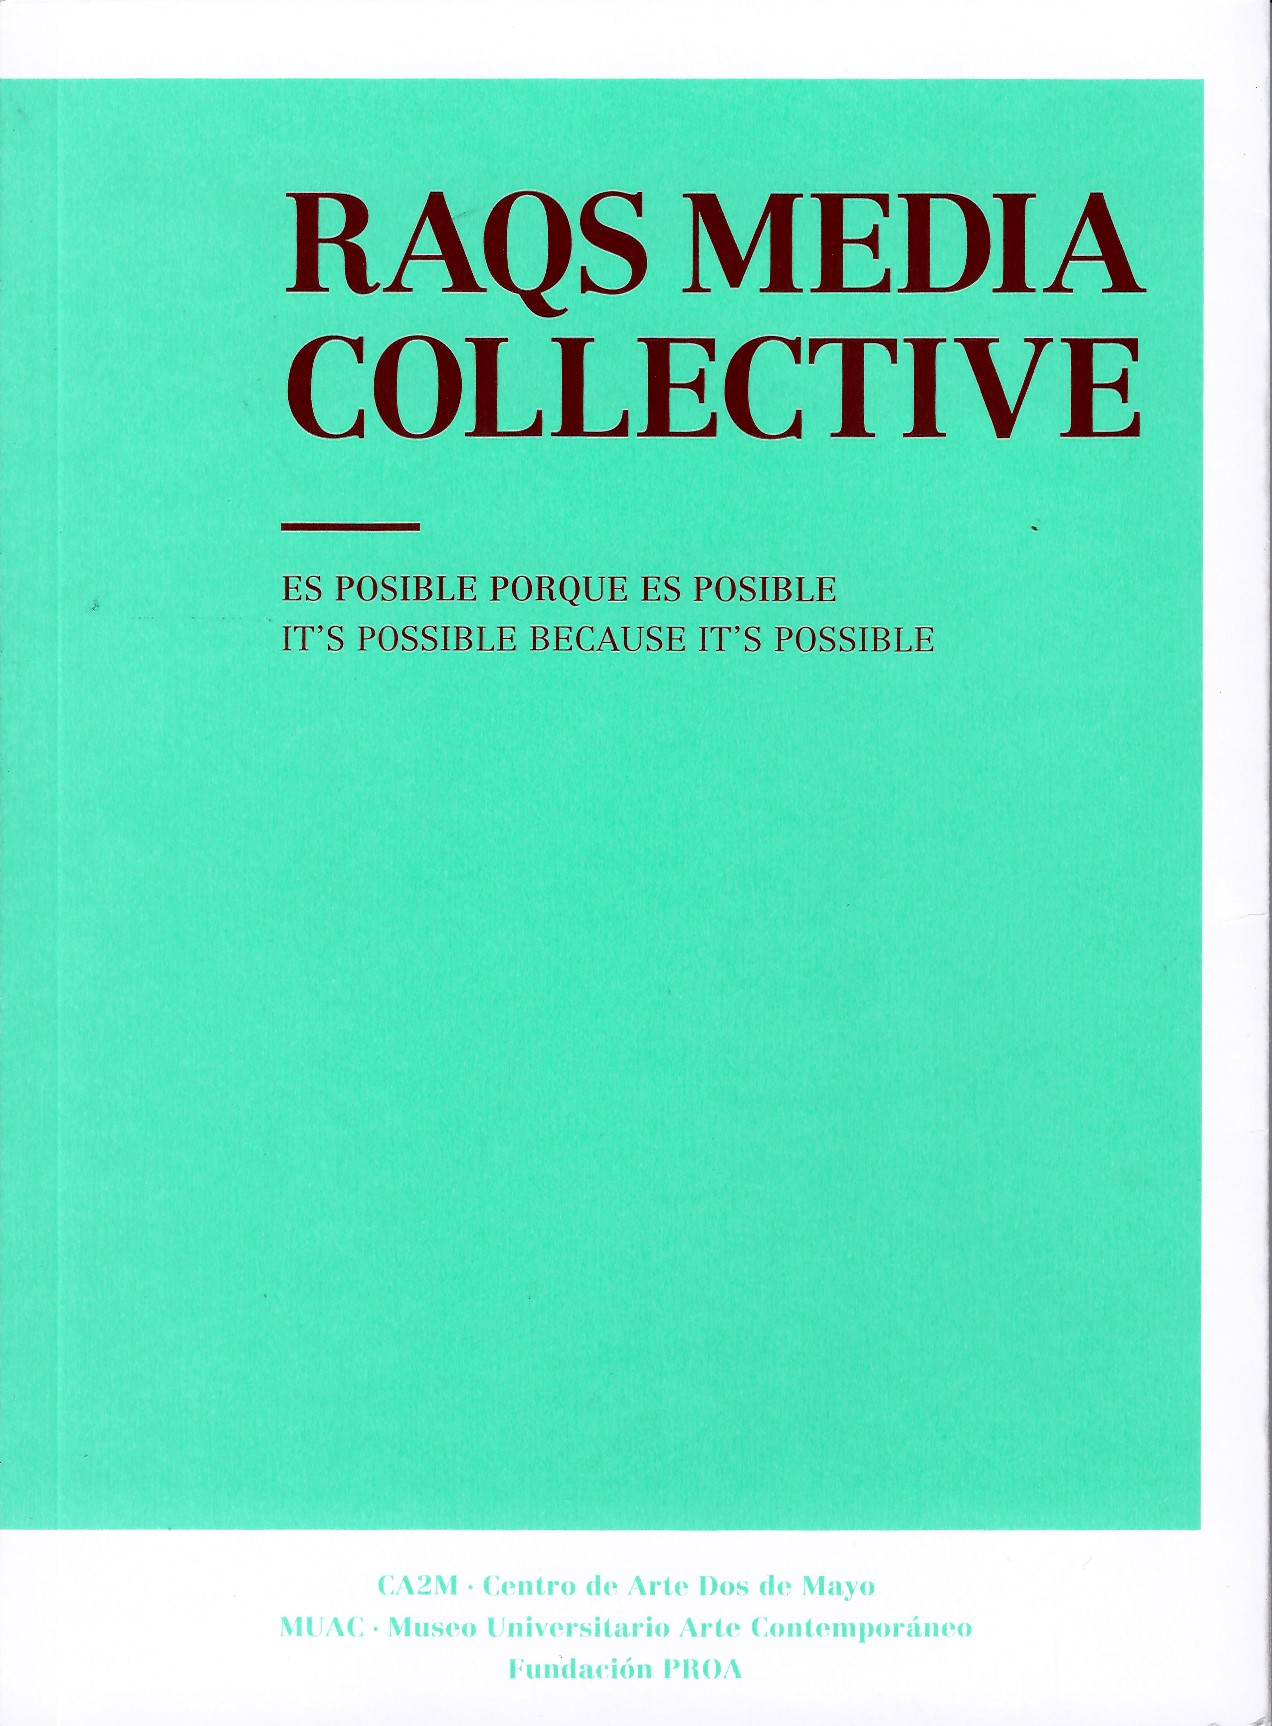 Raqs media collective. Es posible porque es posible